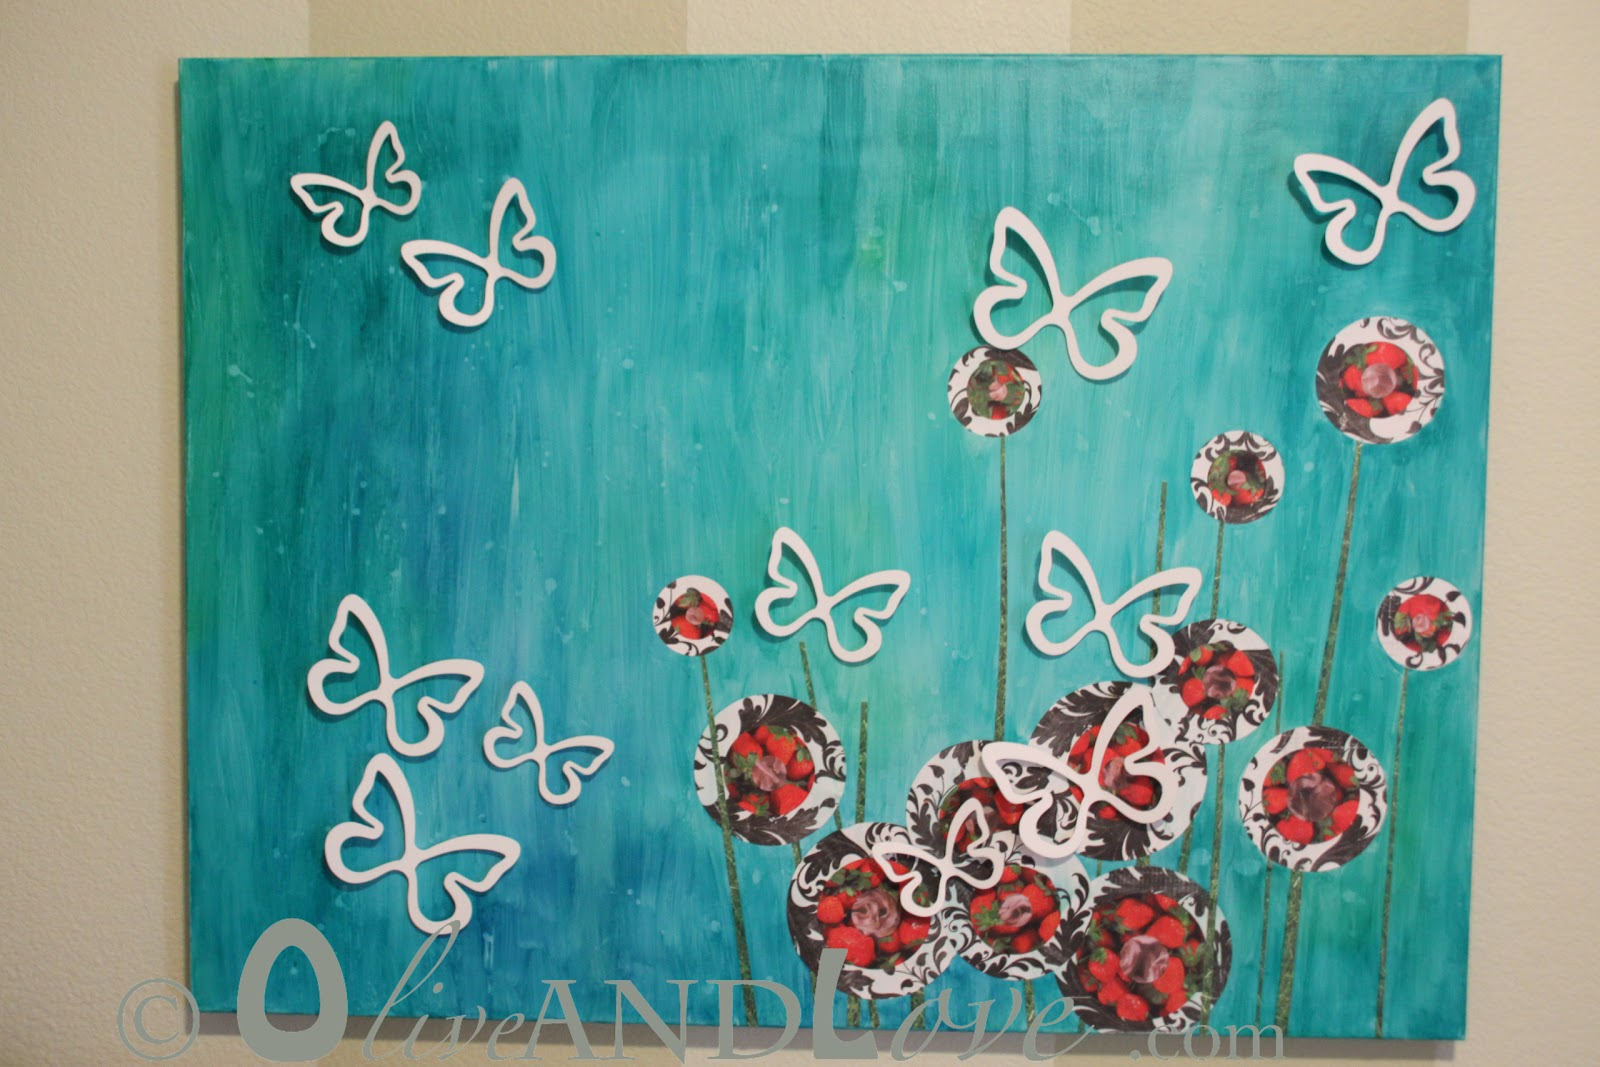 olive and love 3d canvas art with butterflies and